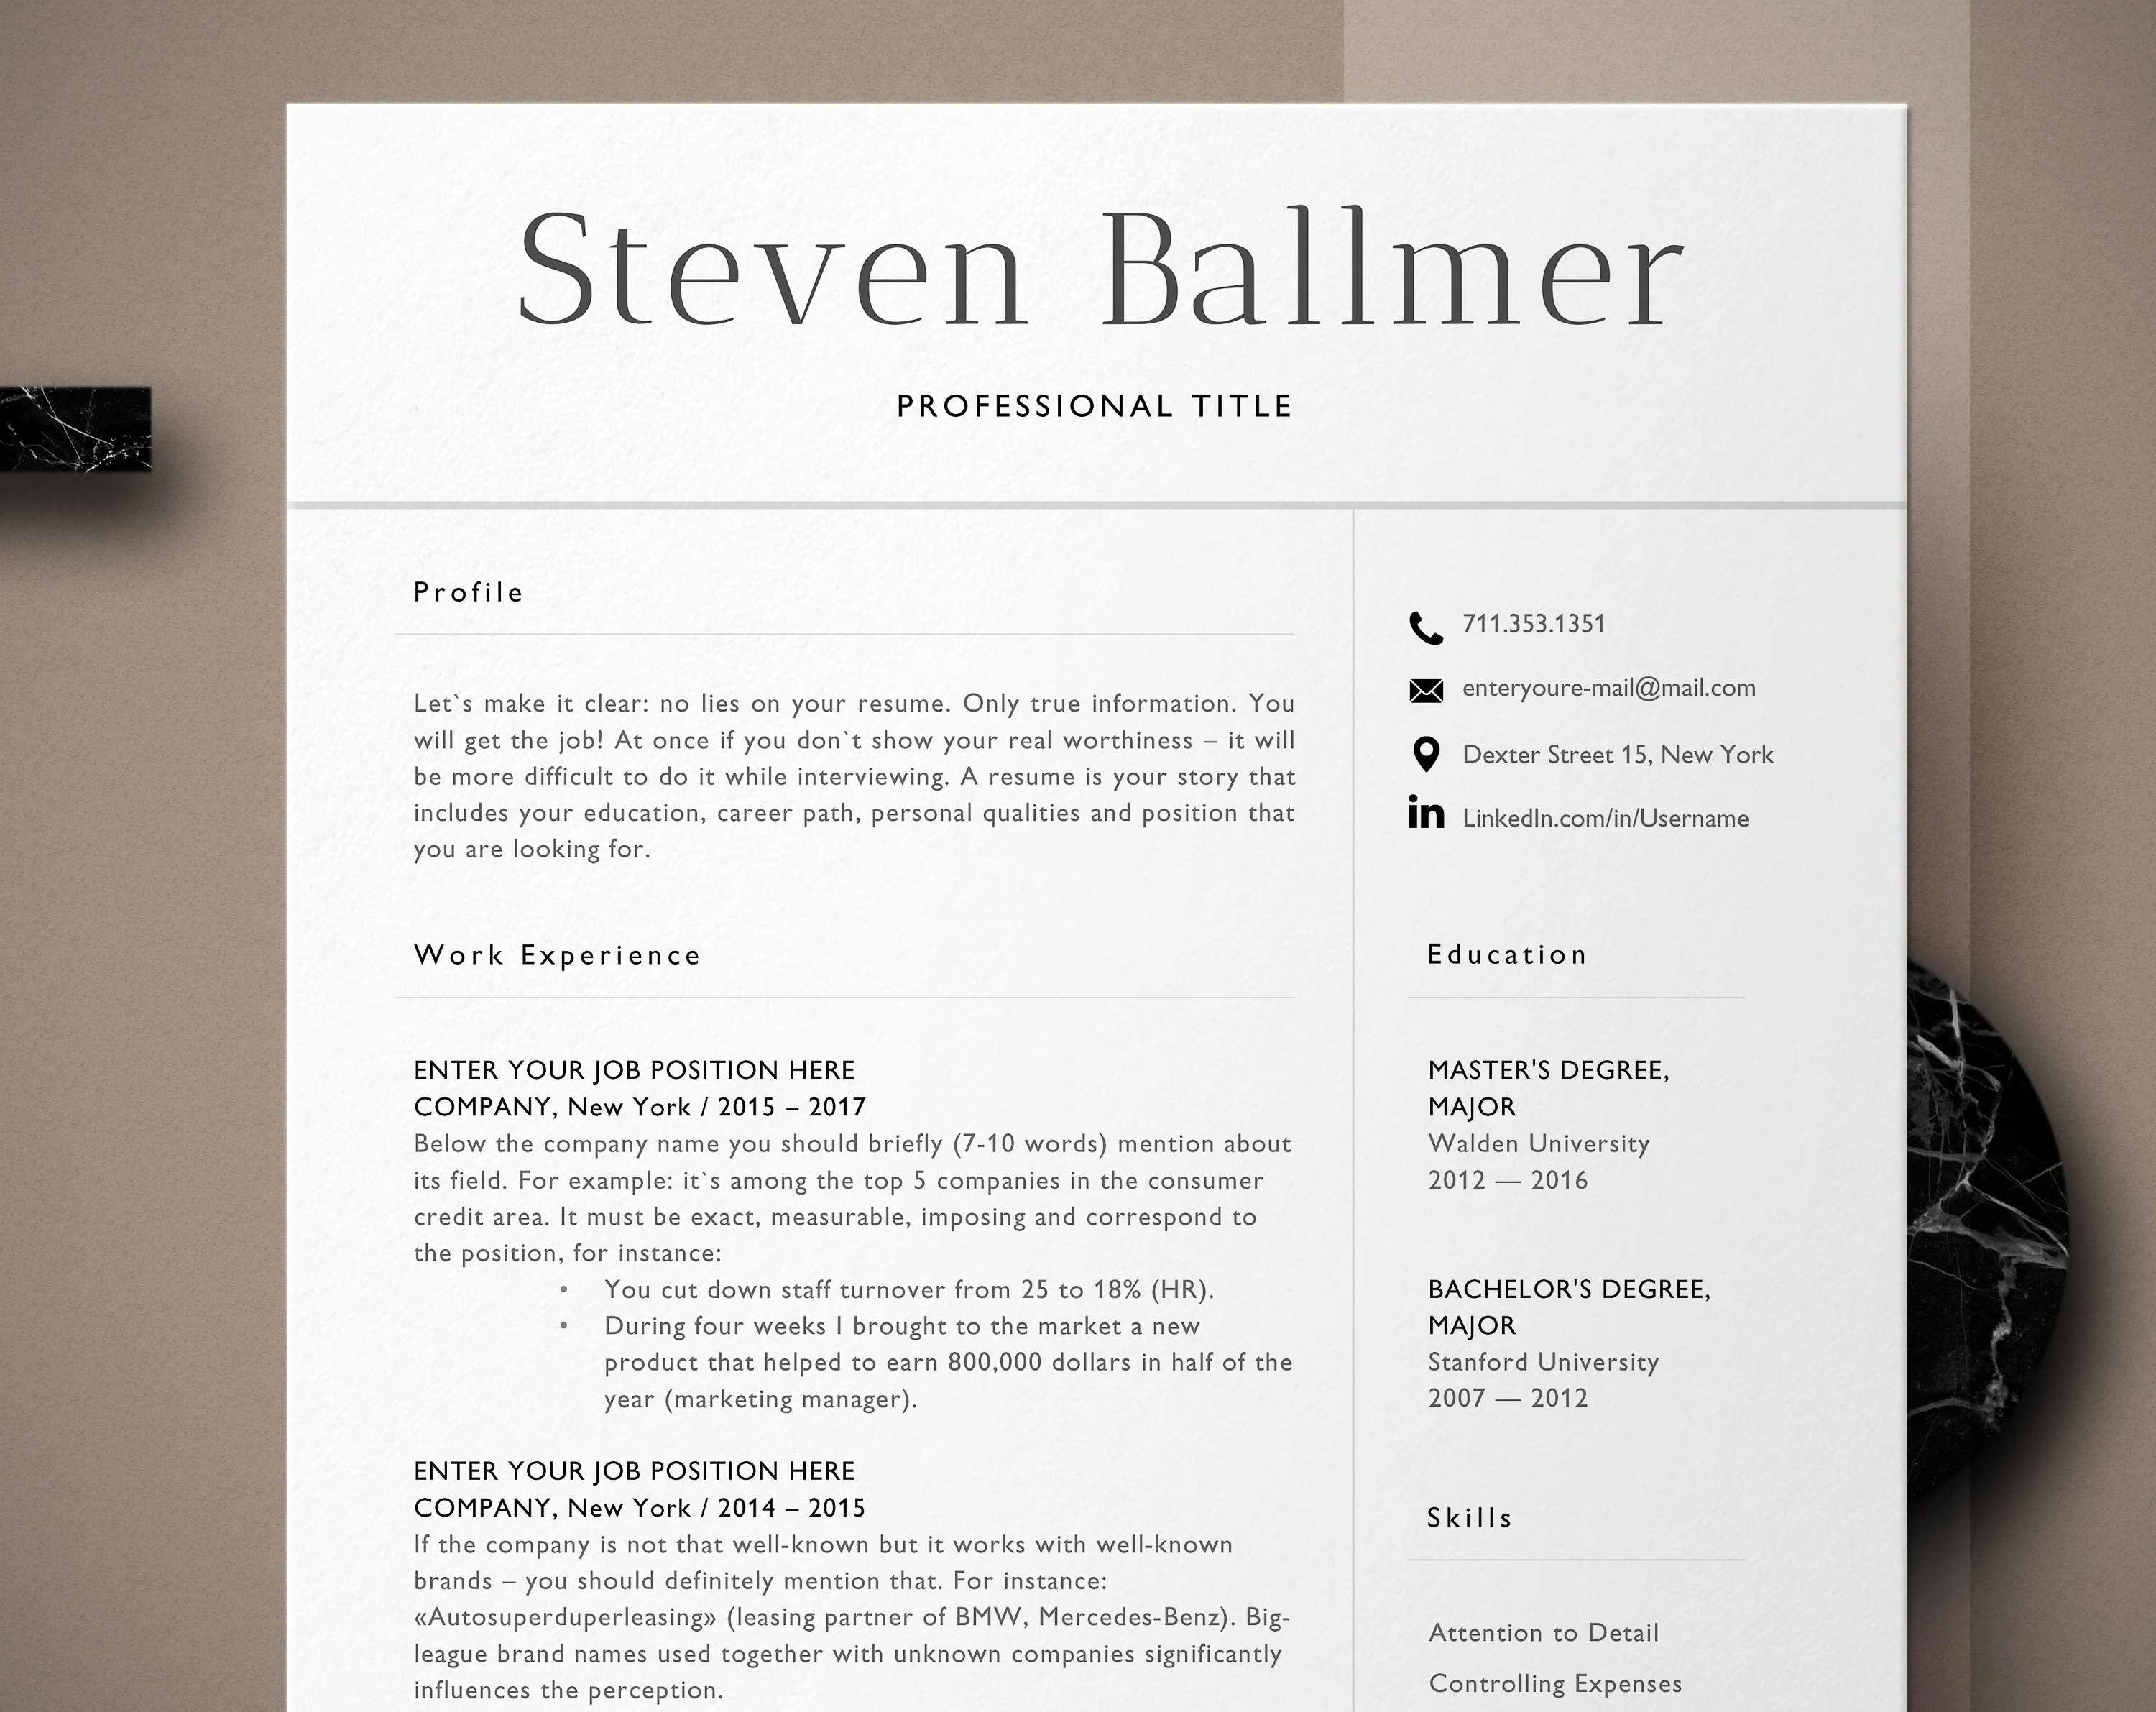 Curriculum Vitae Template Classic Resume CV Template Word Etsy